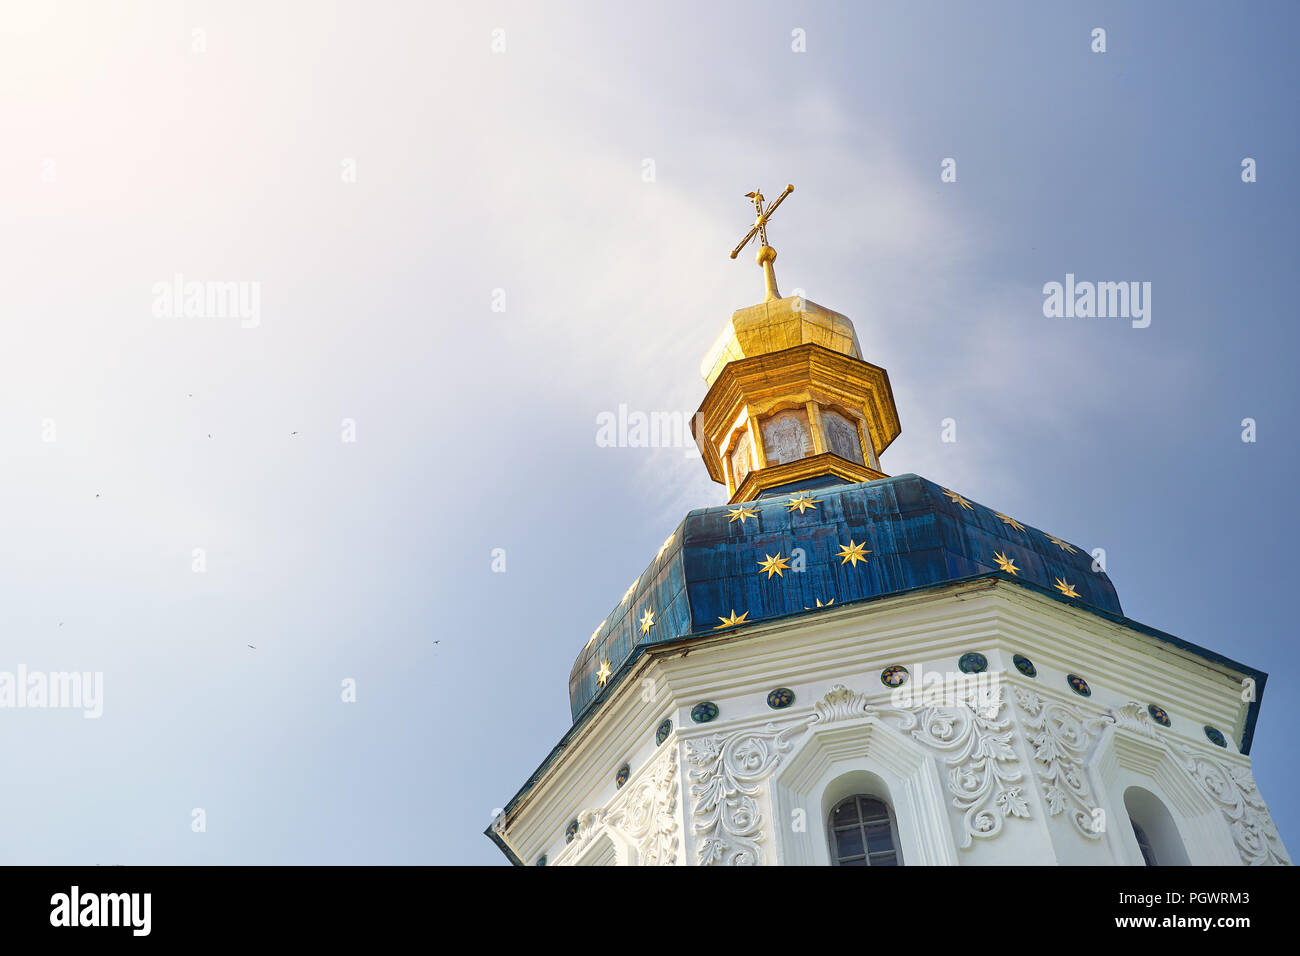 Blue dome with stars and golden cross of Kiev Pechersk Lavra. Old historical architecture in Kiev, Ukraine - Stock Image